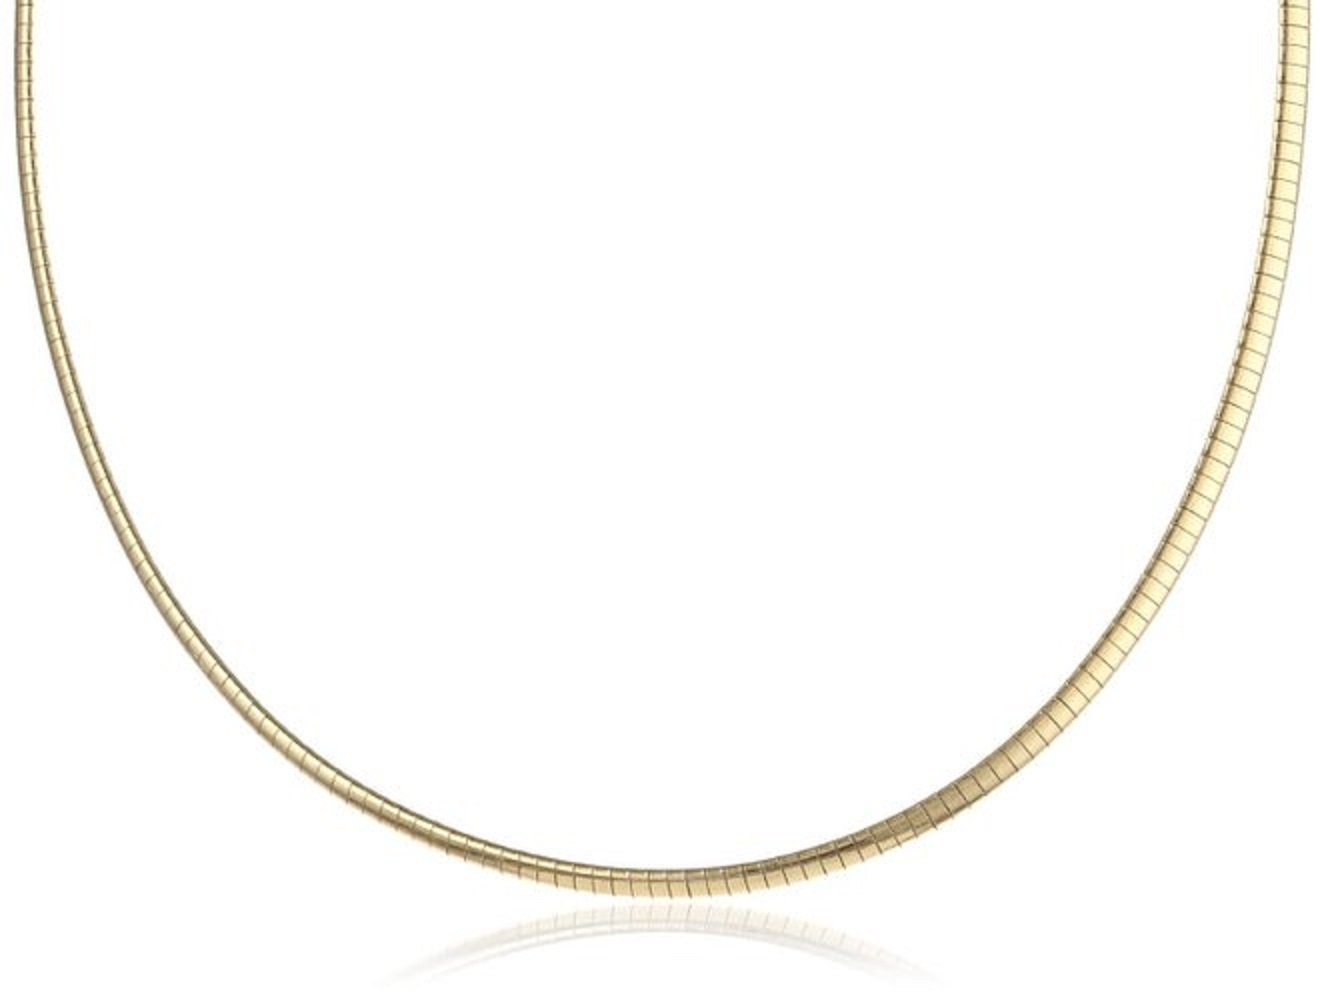 4mm 18K-Gold Plated .925 Sterling Silver FLAT DOME Omega Necklace 16in-18in (.925 Italian Sterling Silver, 16 Inches)